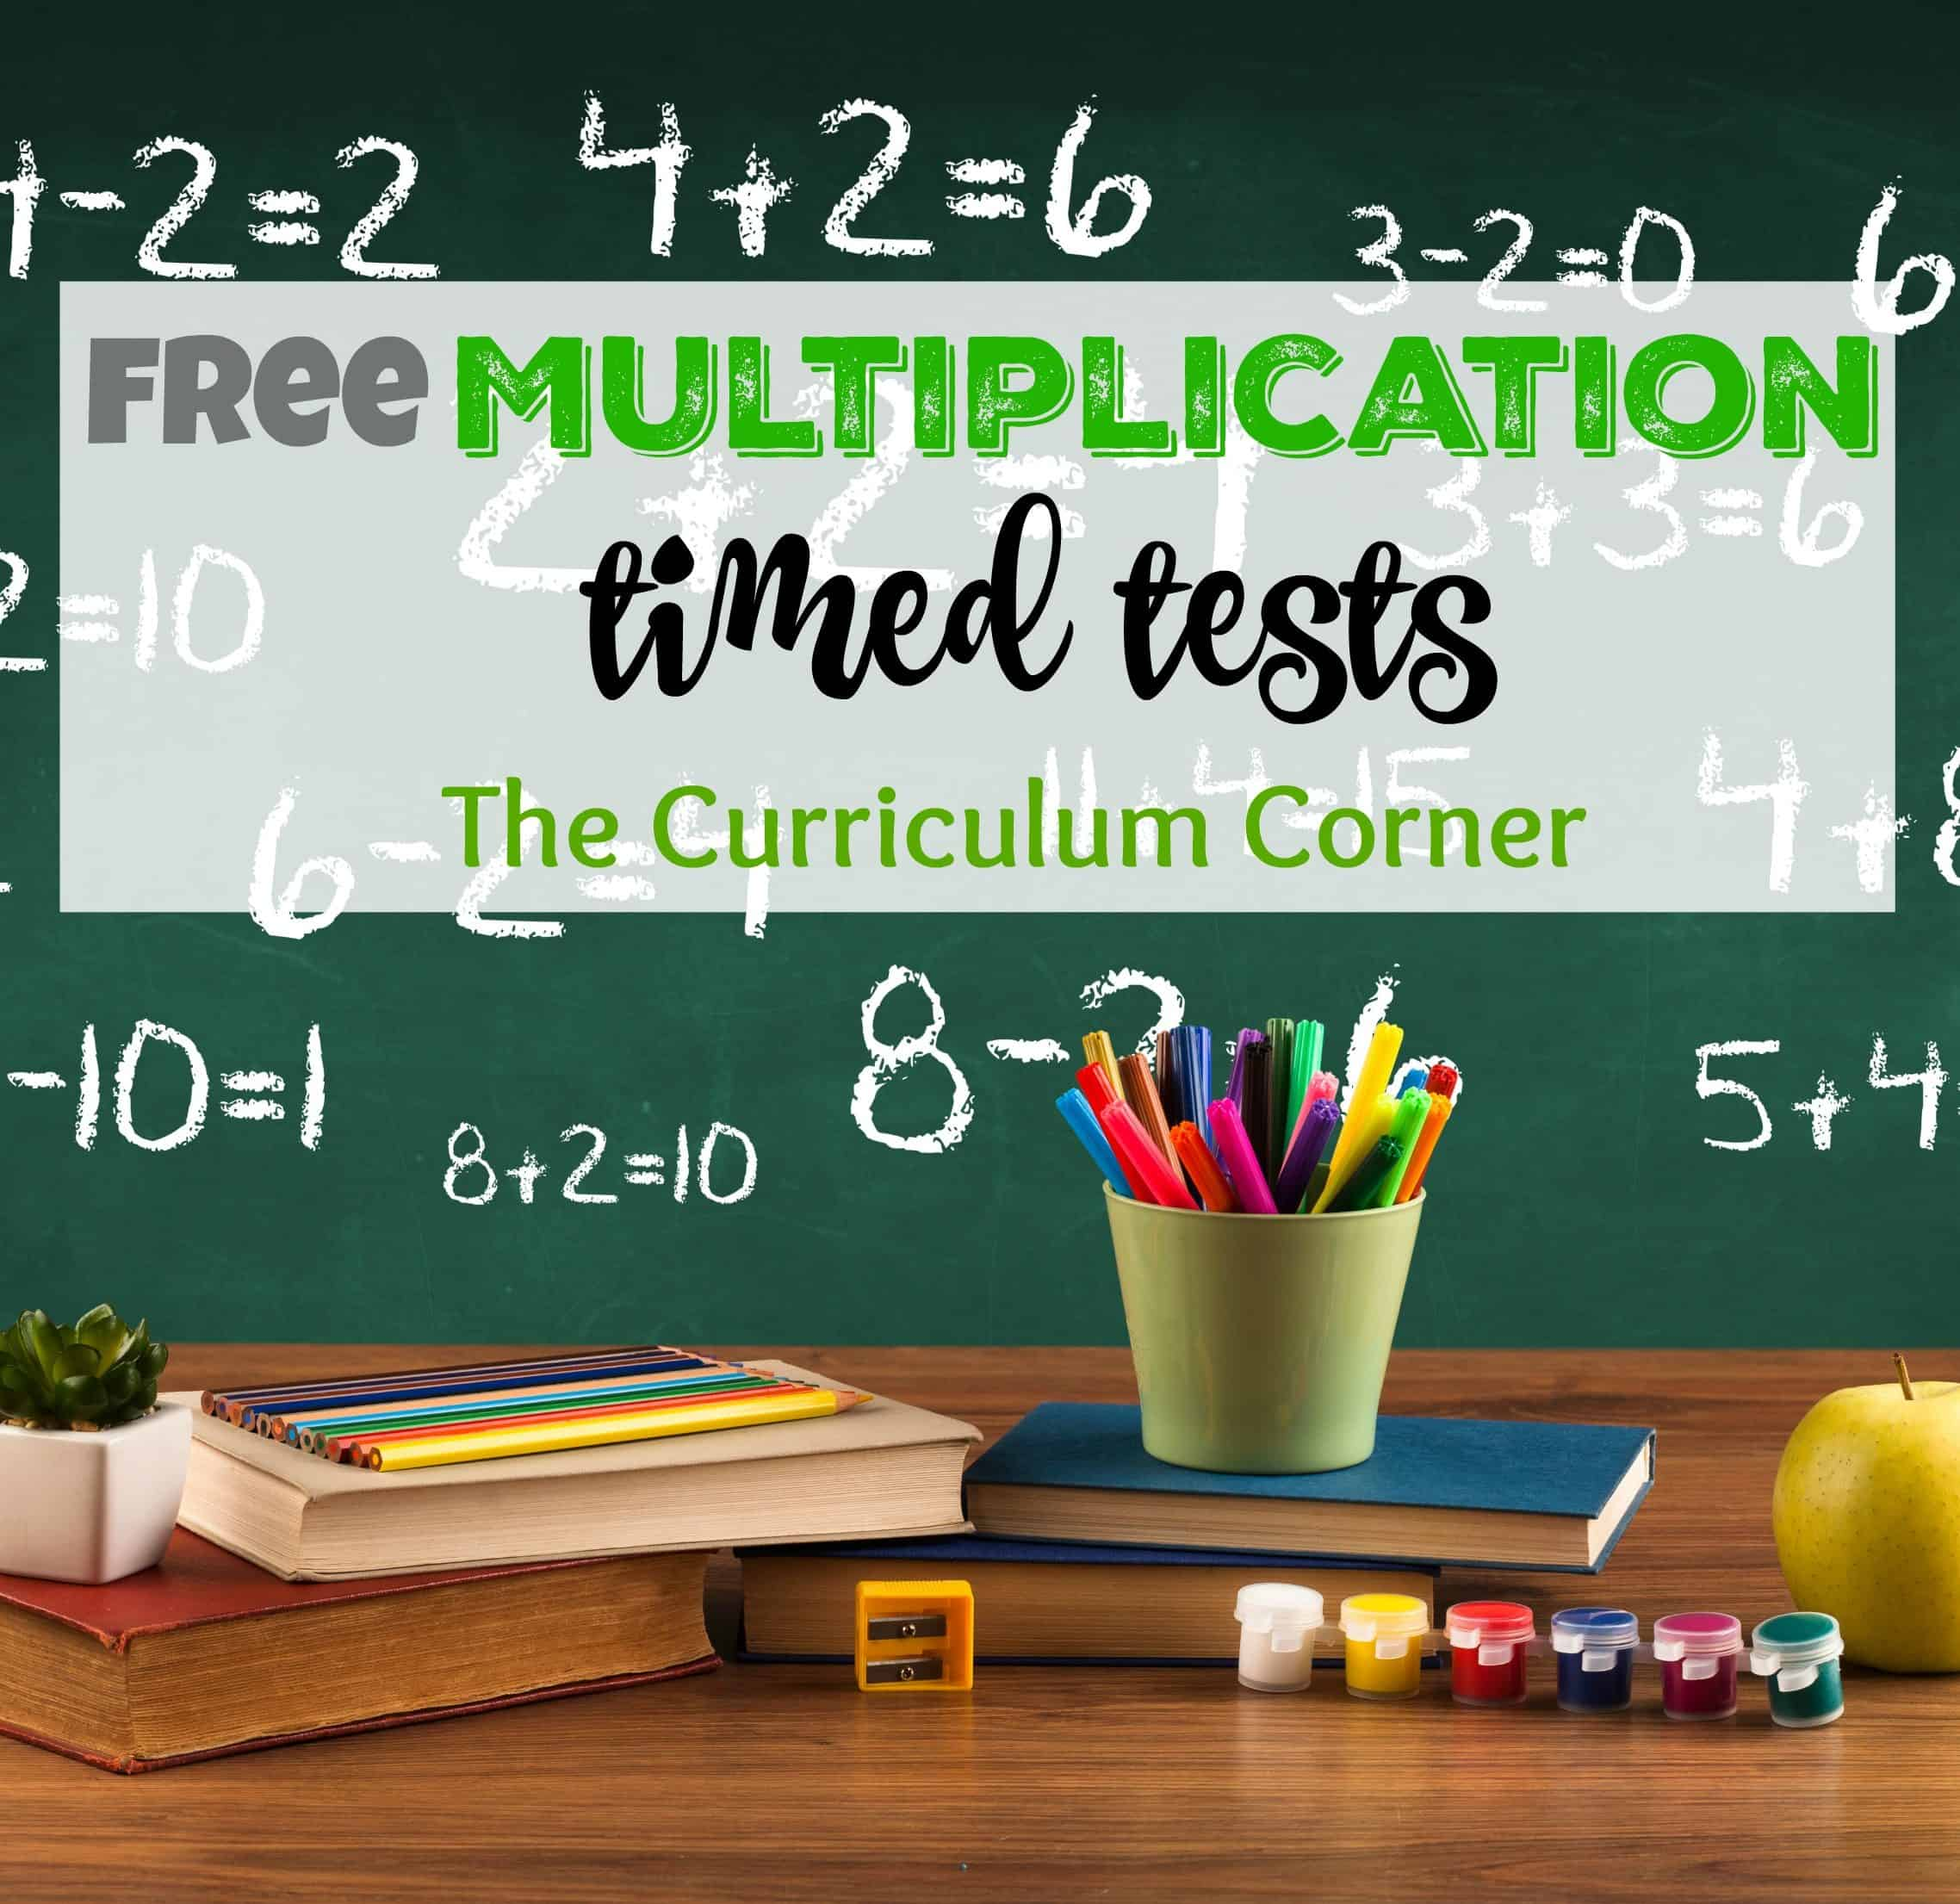 worksheet Multiplication Facts Timed Test updated multiplication timed tests the curriculum corner 123 123